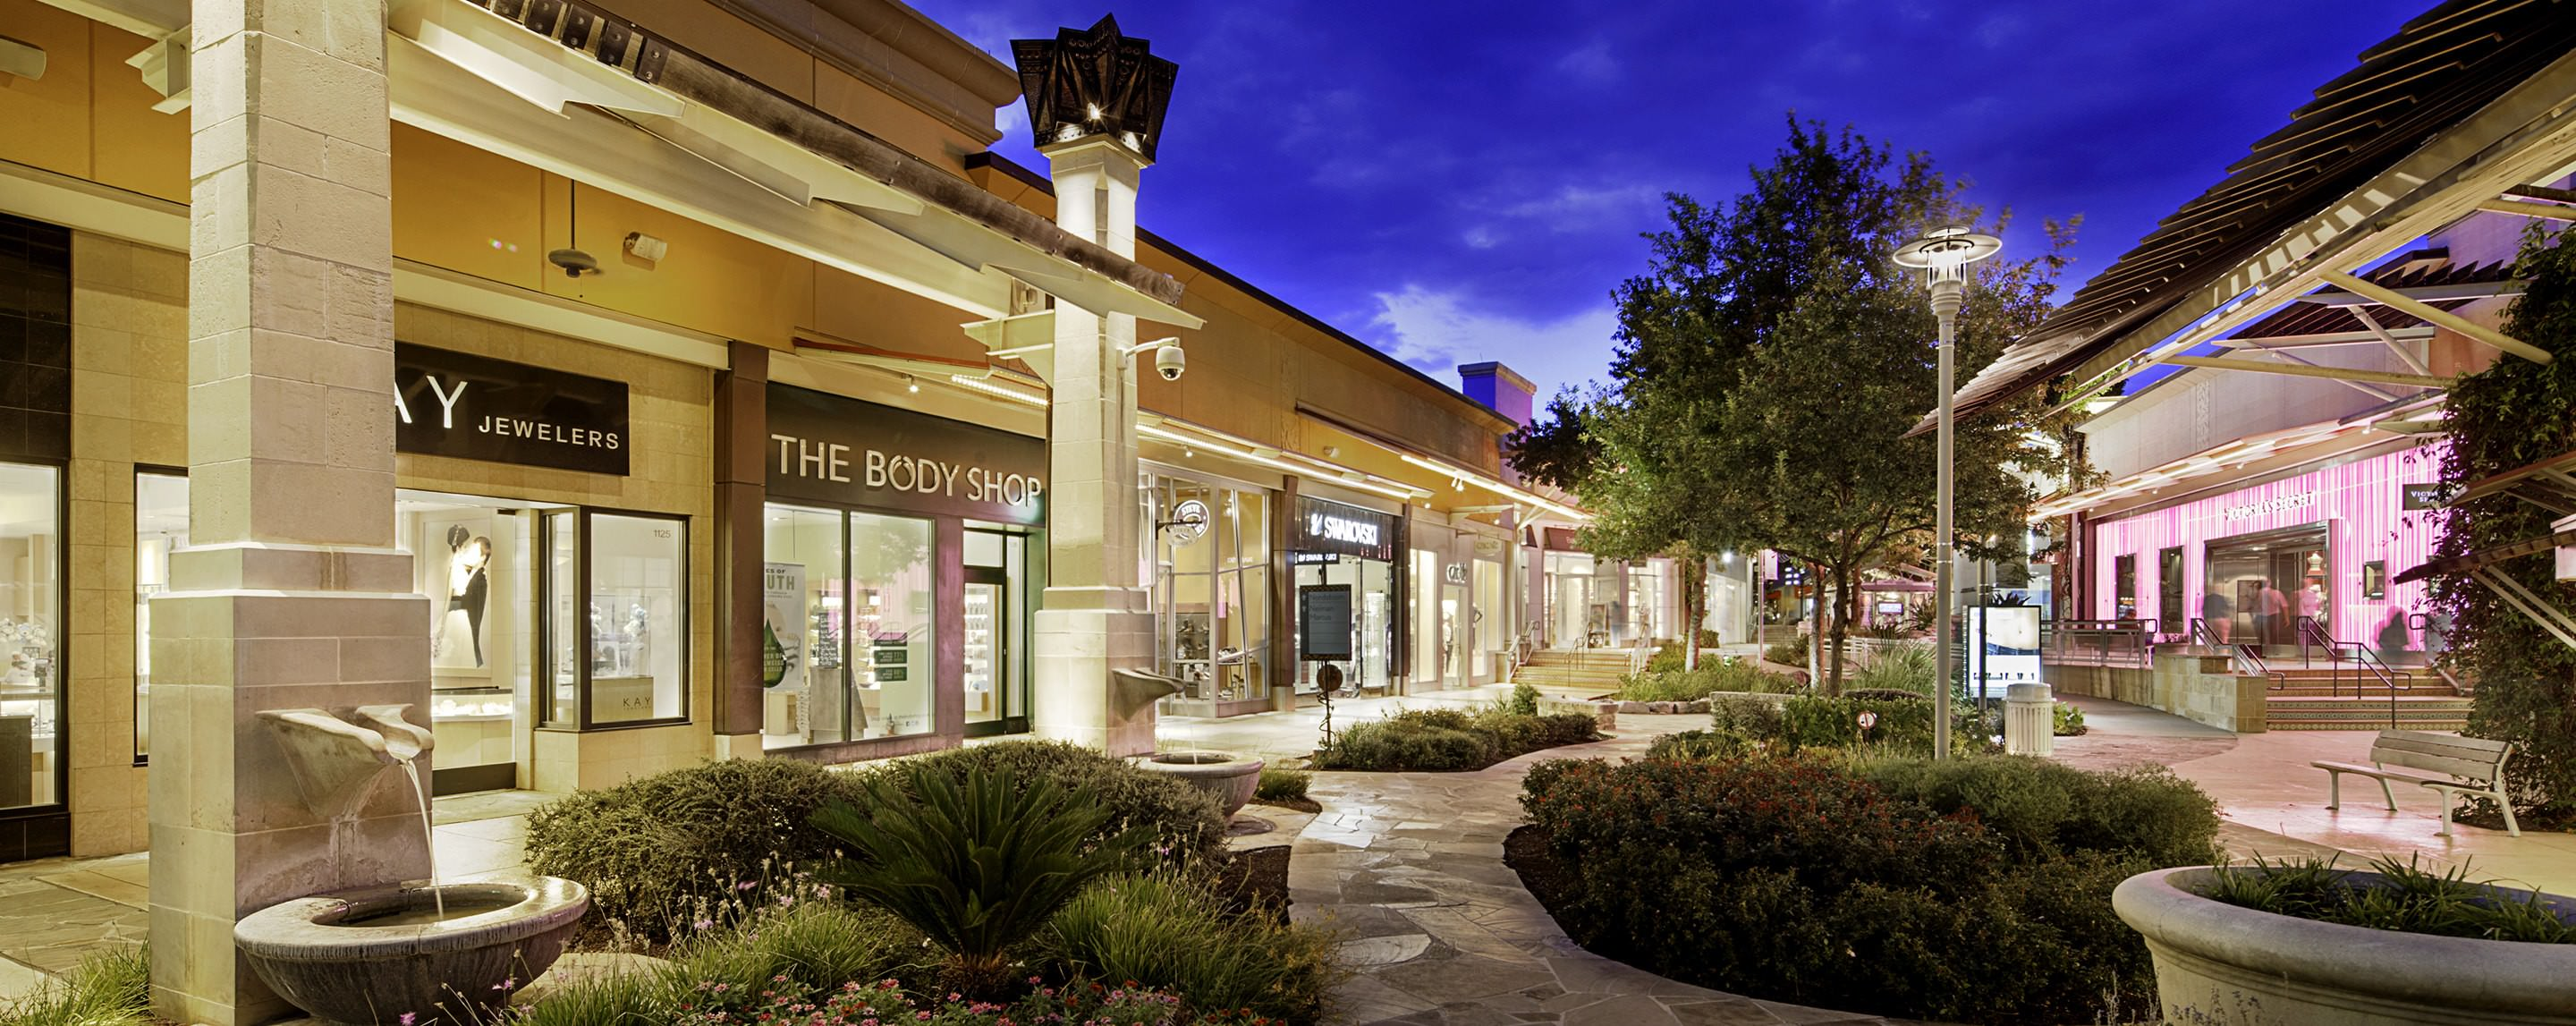 Storefronts at The Shops at La Cantera light up the surrounding area and lush landscaping.